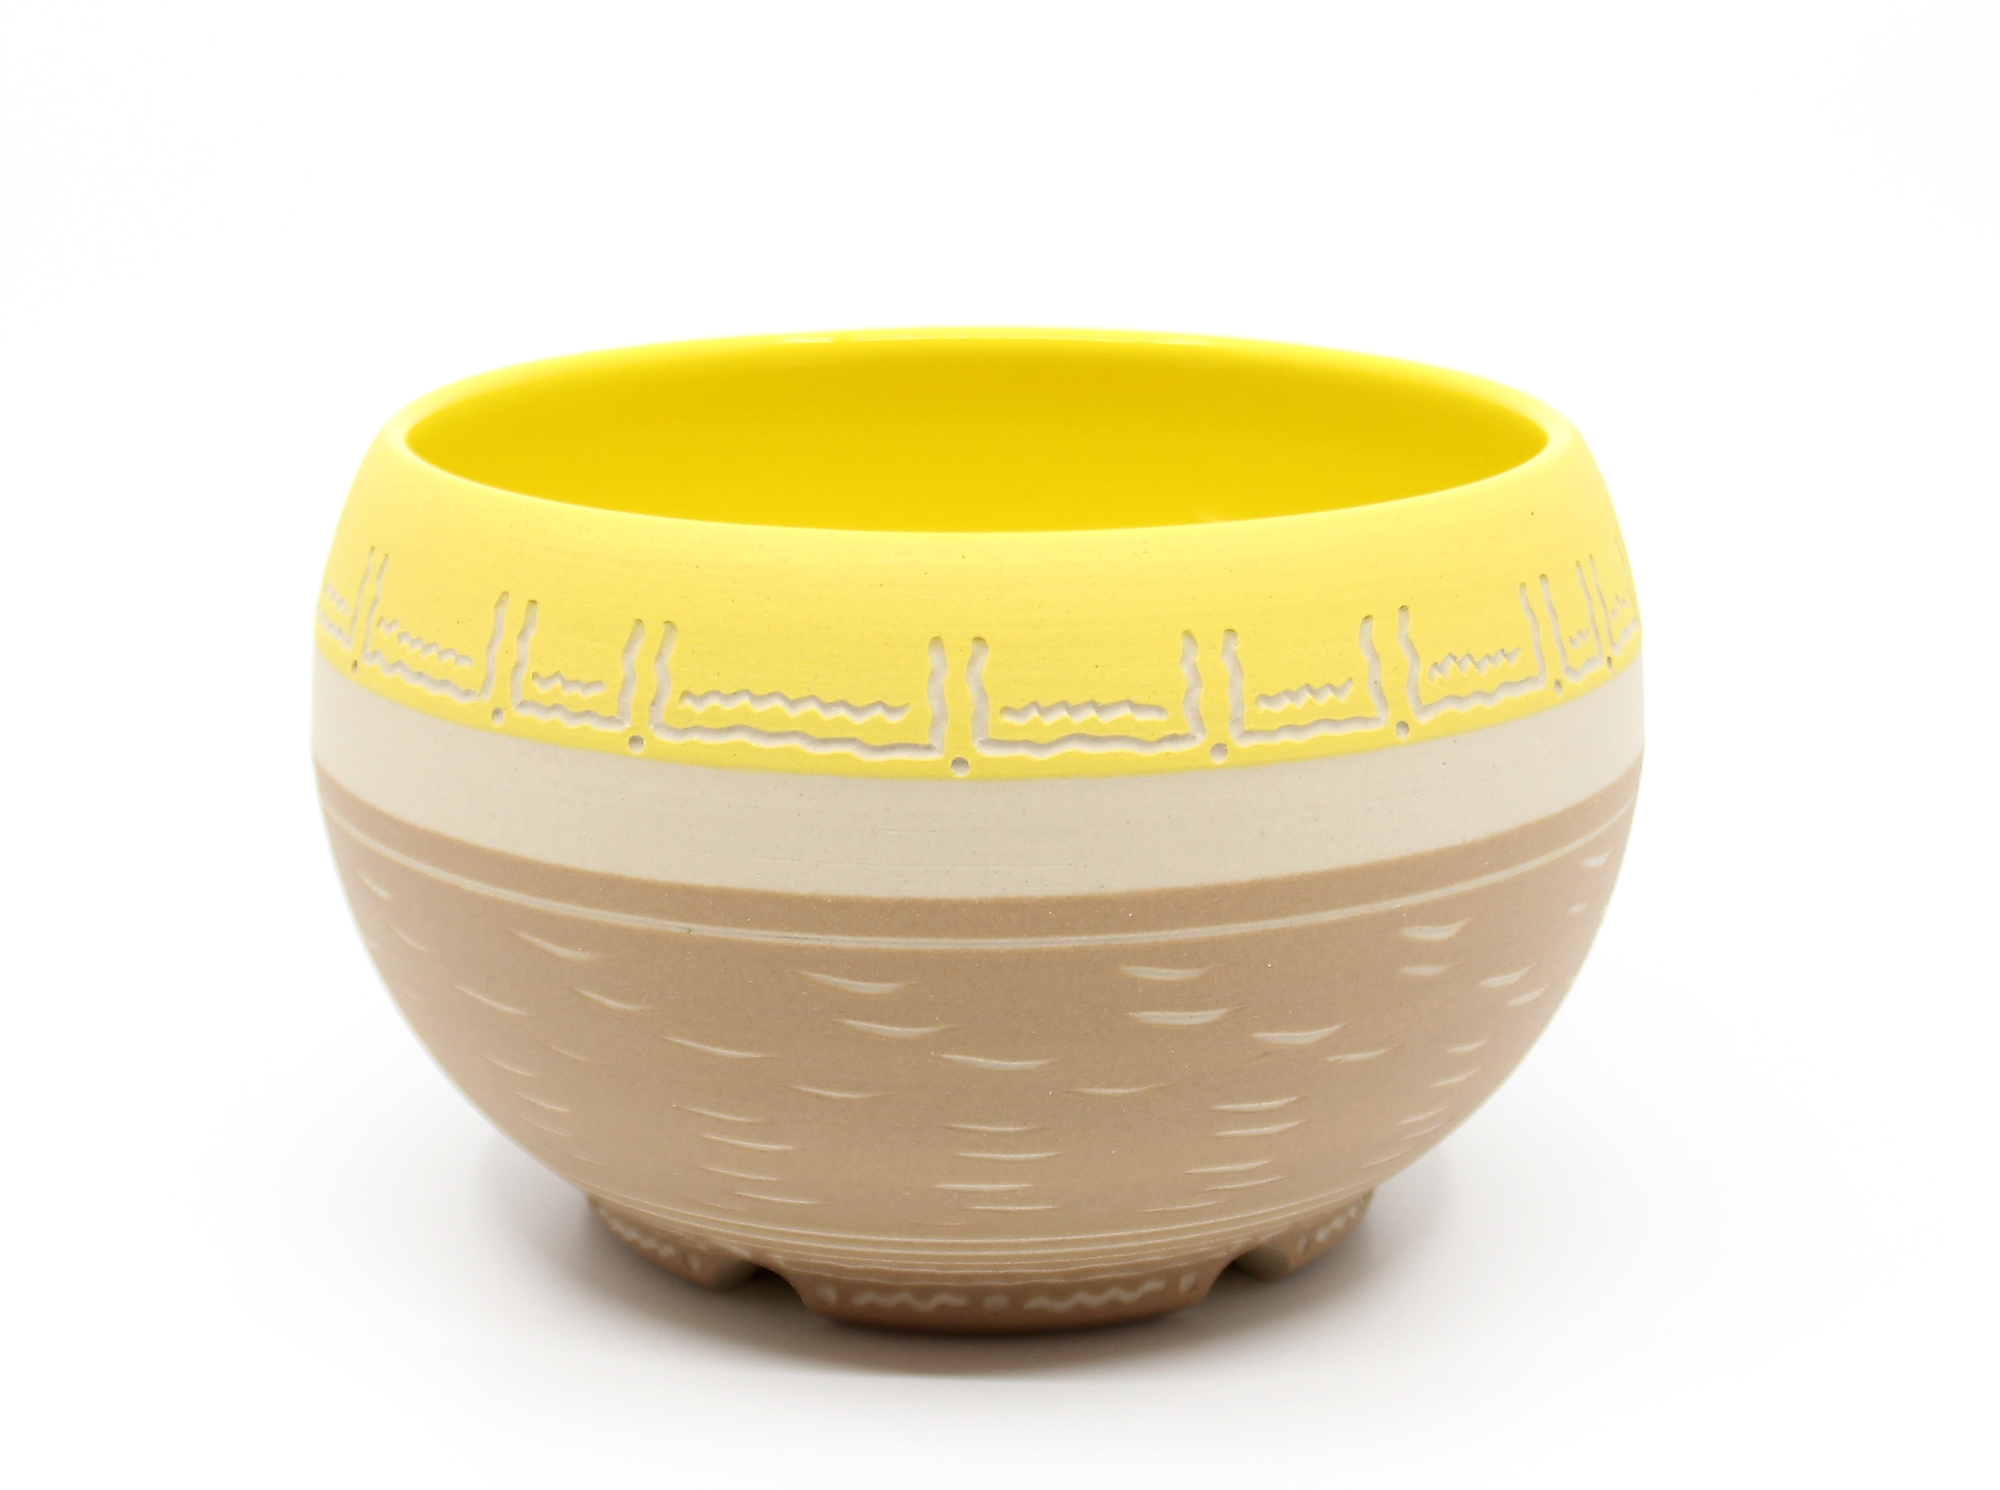 Cinnamon & Yellow Bowl by Chris Casey